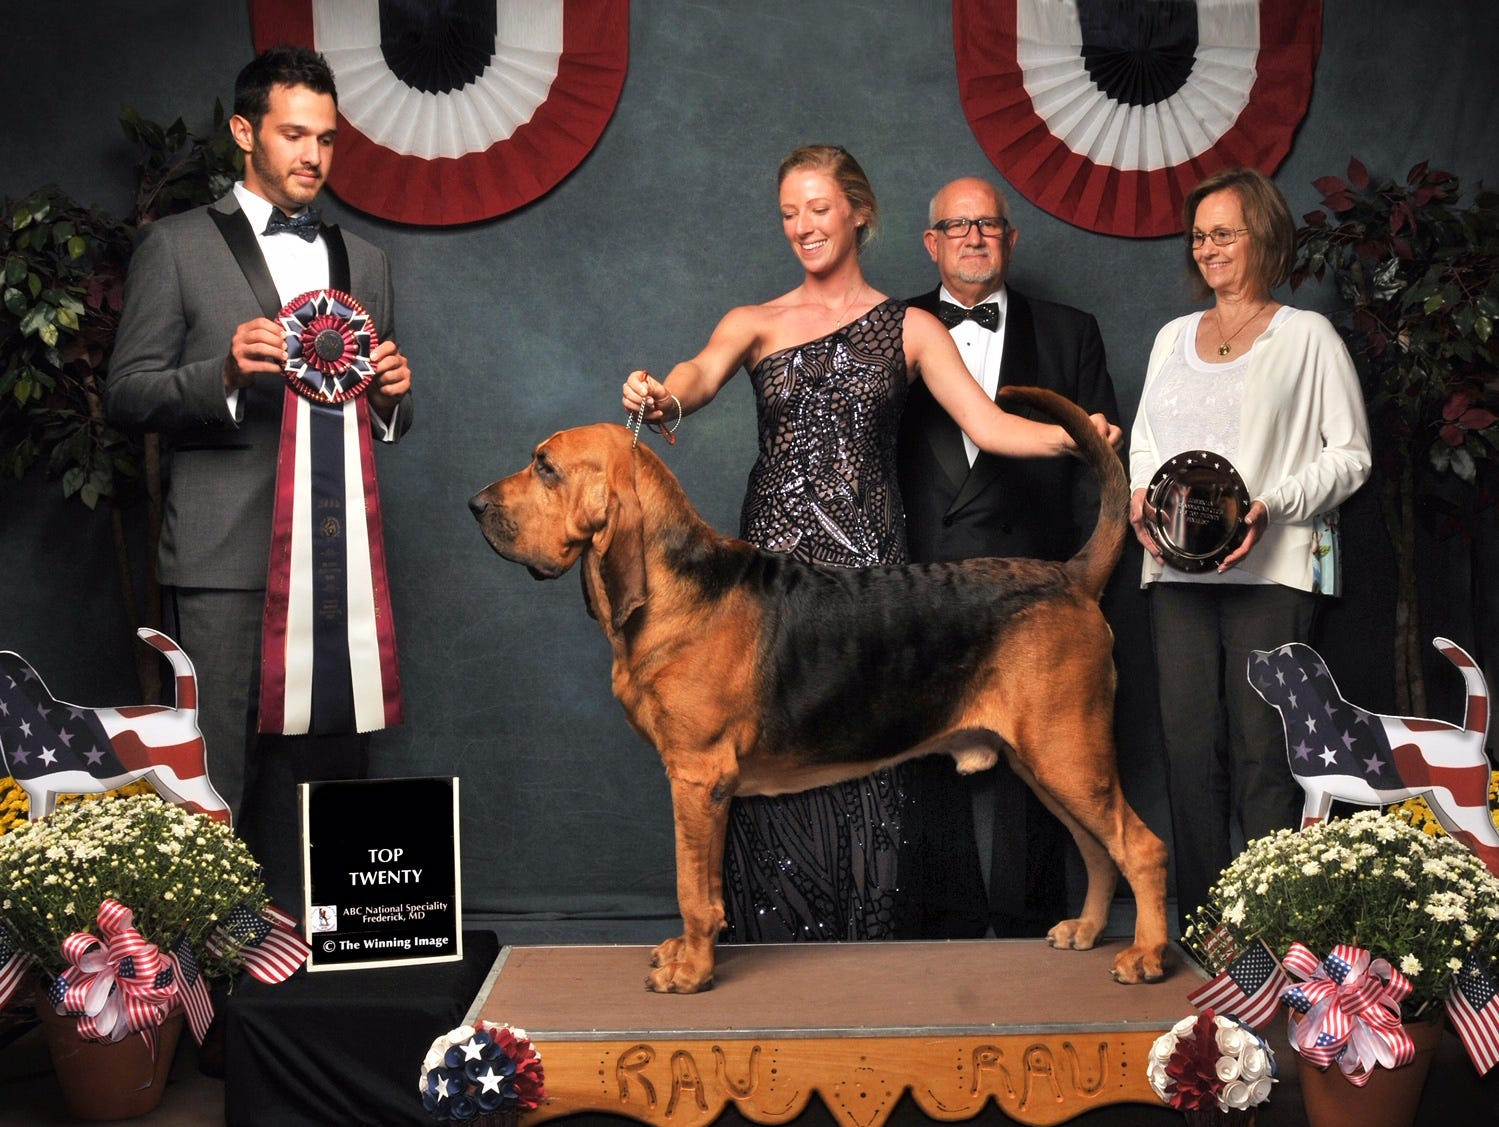 Owen, a bloodhound owned by Rick and Stacie Shriver of Bear, strikes a pose with his professional handler, Morgan Mattioli, at the Bloodhound National Top Twenty event in Frederick, Maryland, in September 2018.